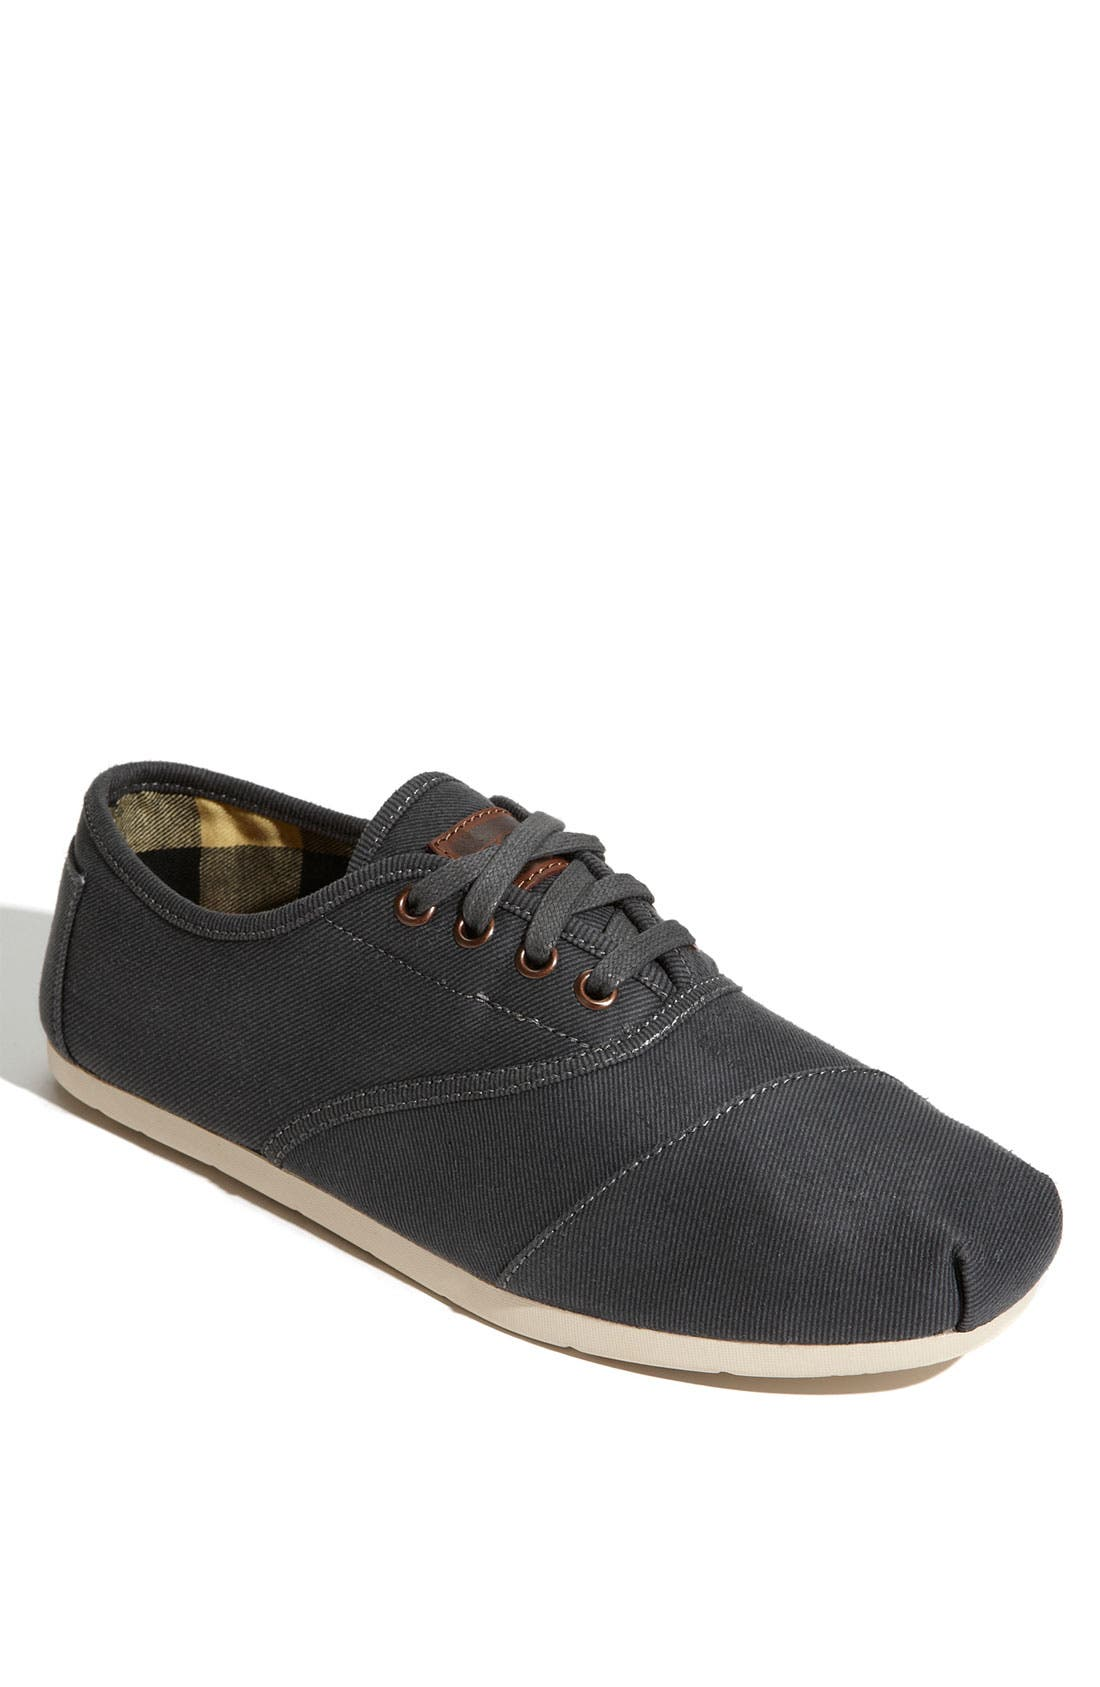 Alternate Image 1 Selected - TOMS 'Cordones' Waxed Canvas Sneaker (Men)